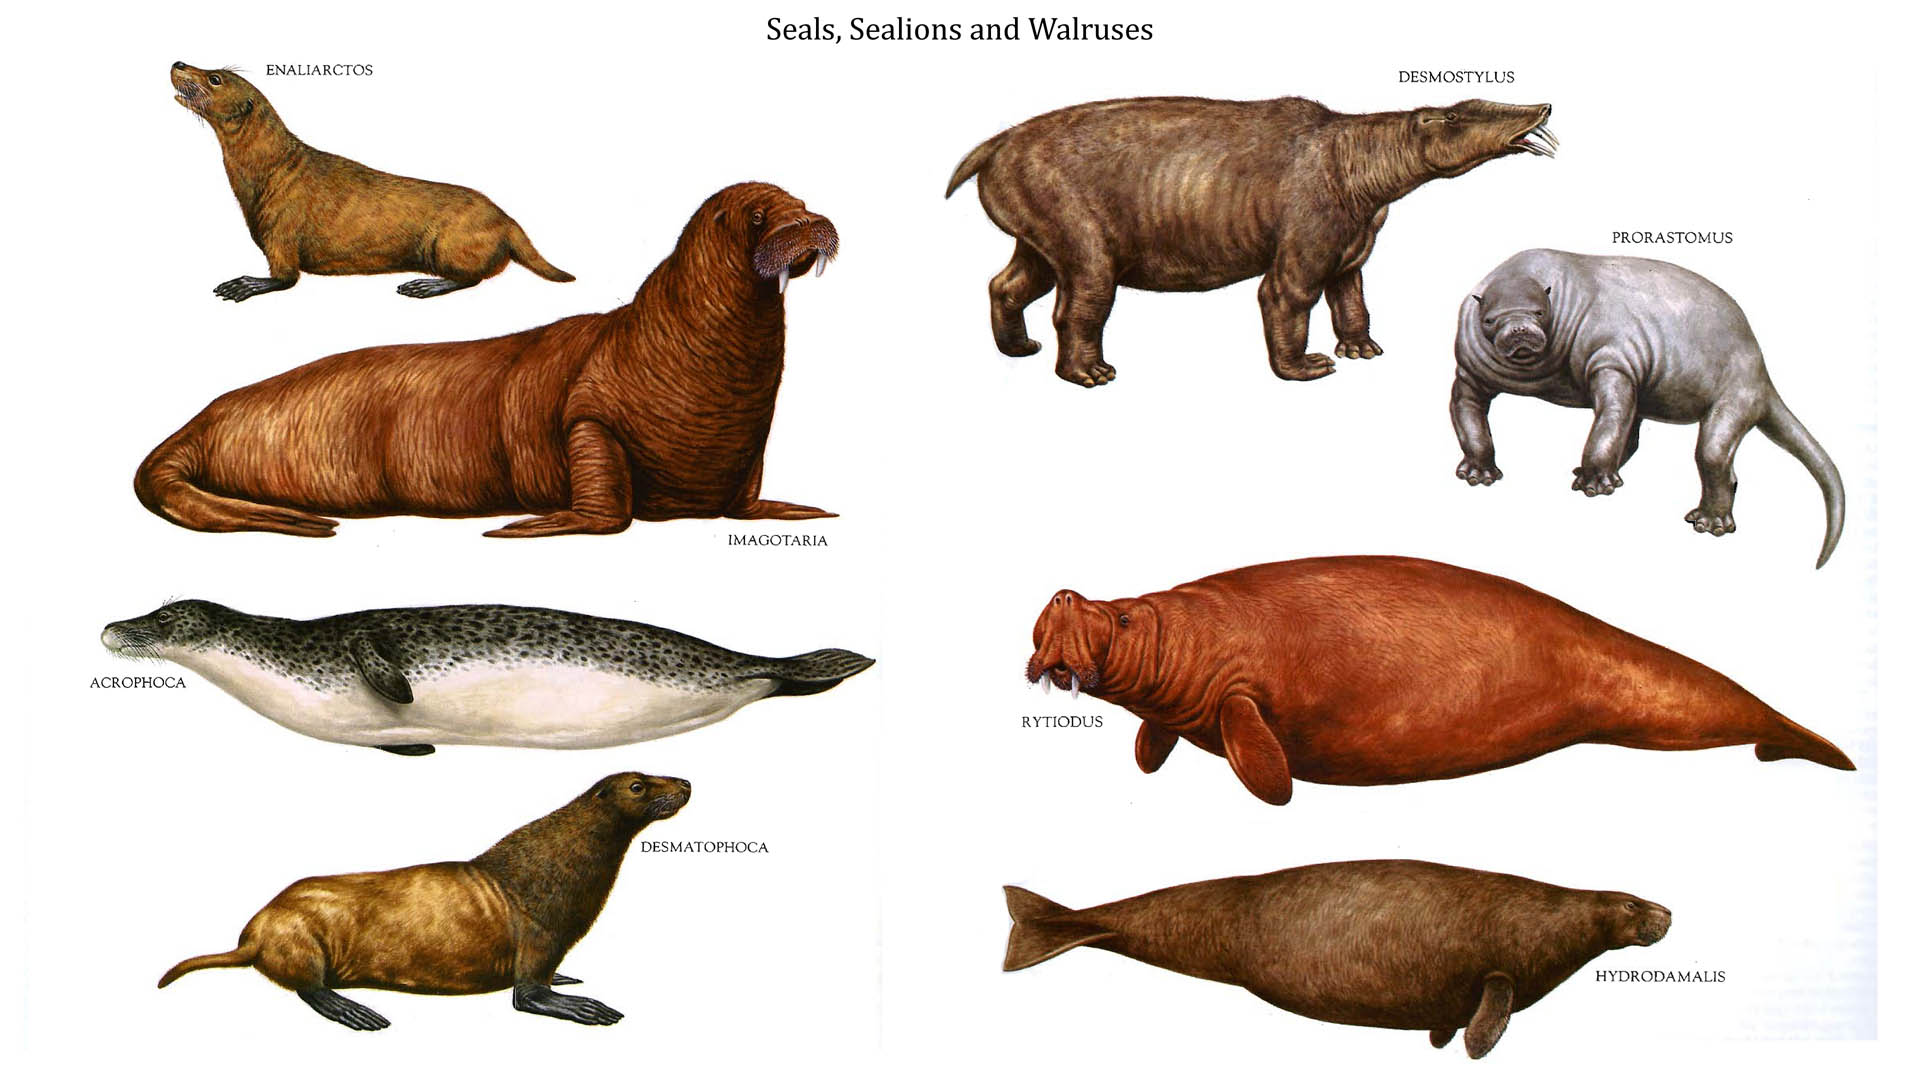 Seals Sealions And Walruses